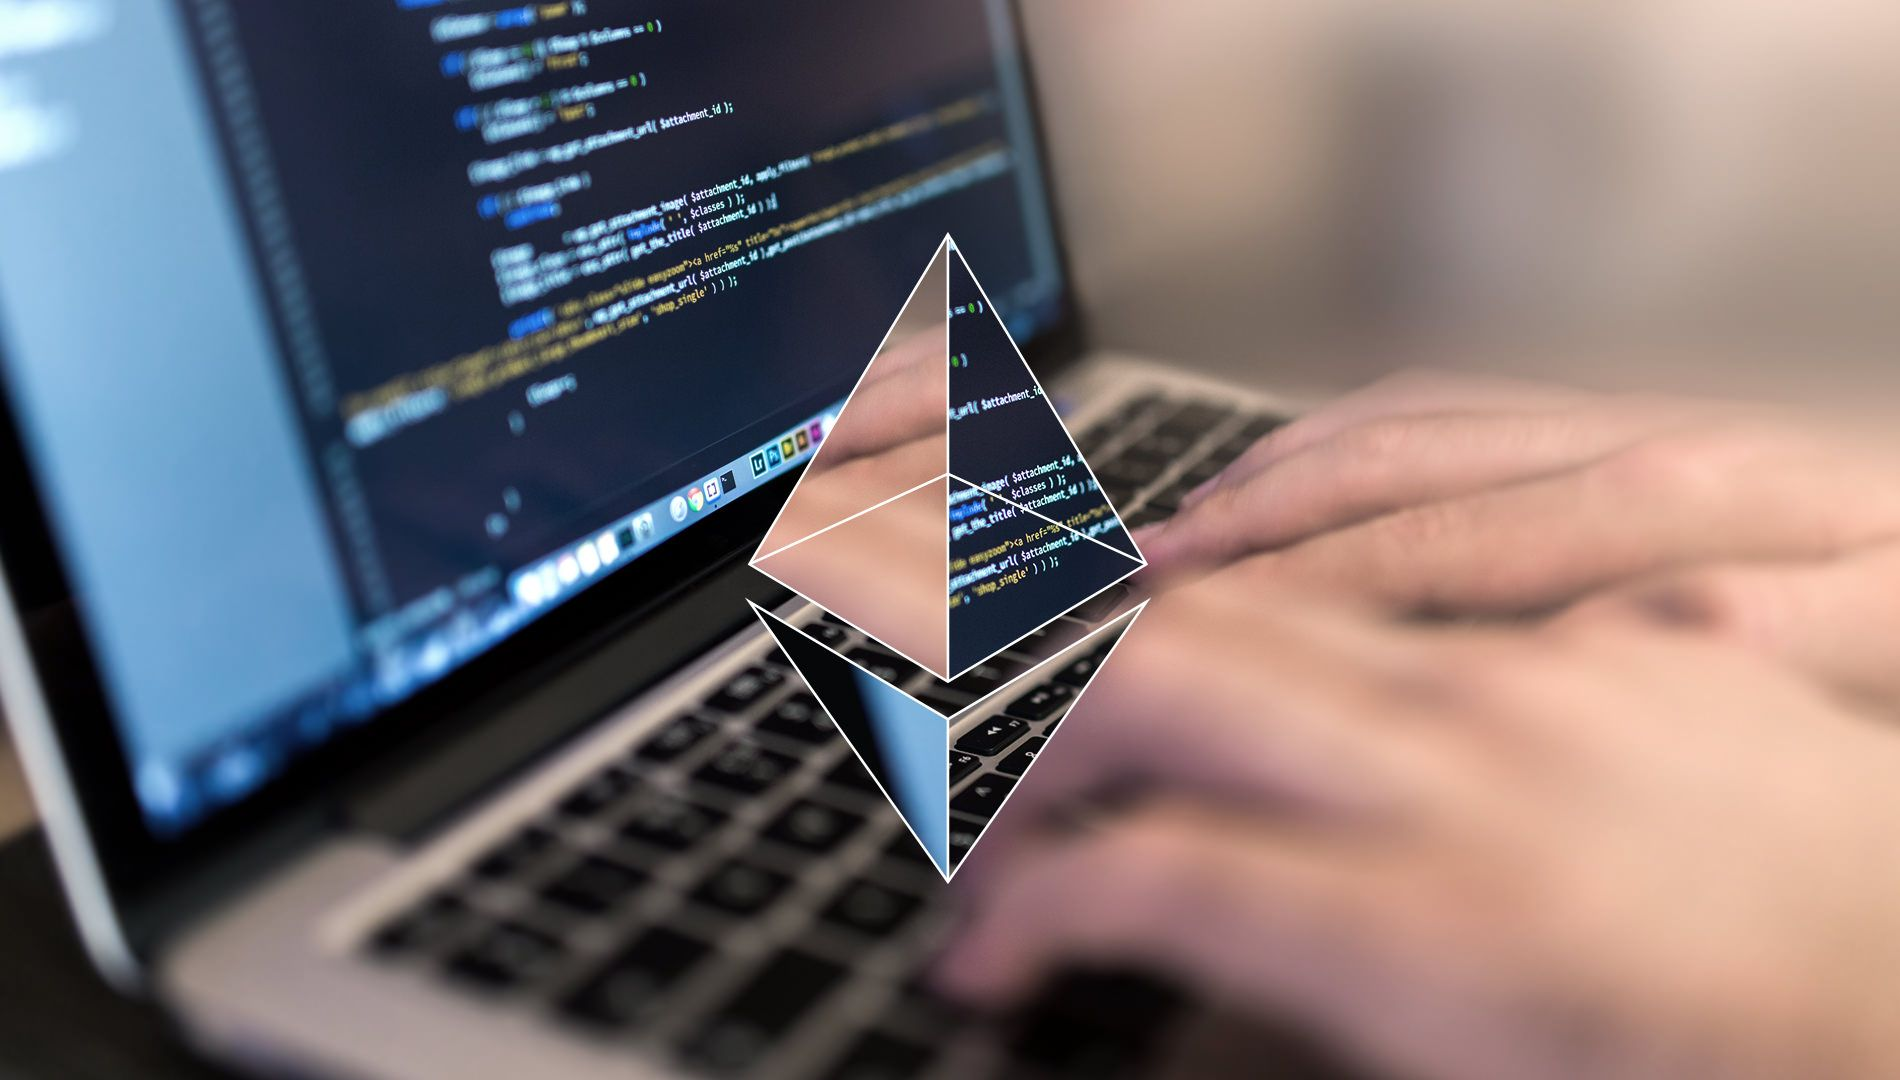 Big Four Auditor EY Launches Zero-Knowledge System for Private Transactions on Ethereum